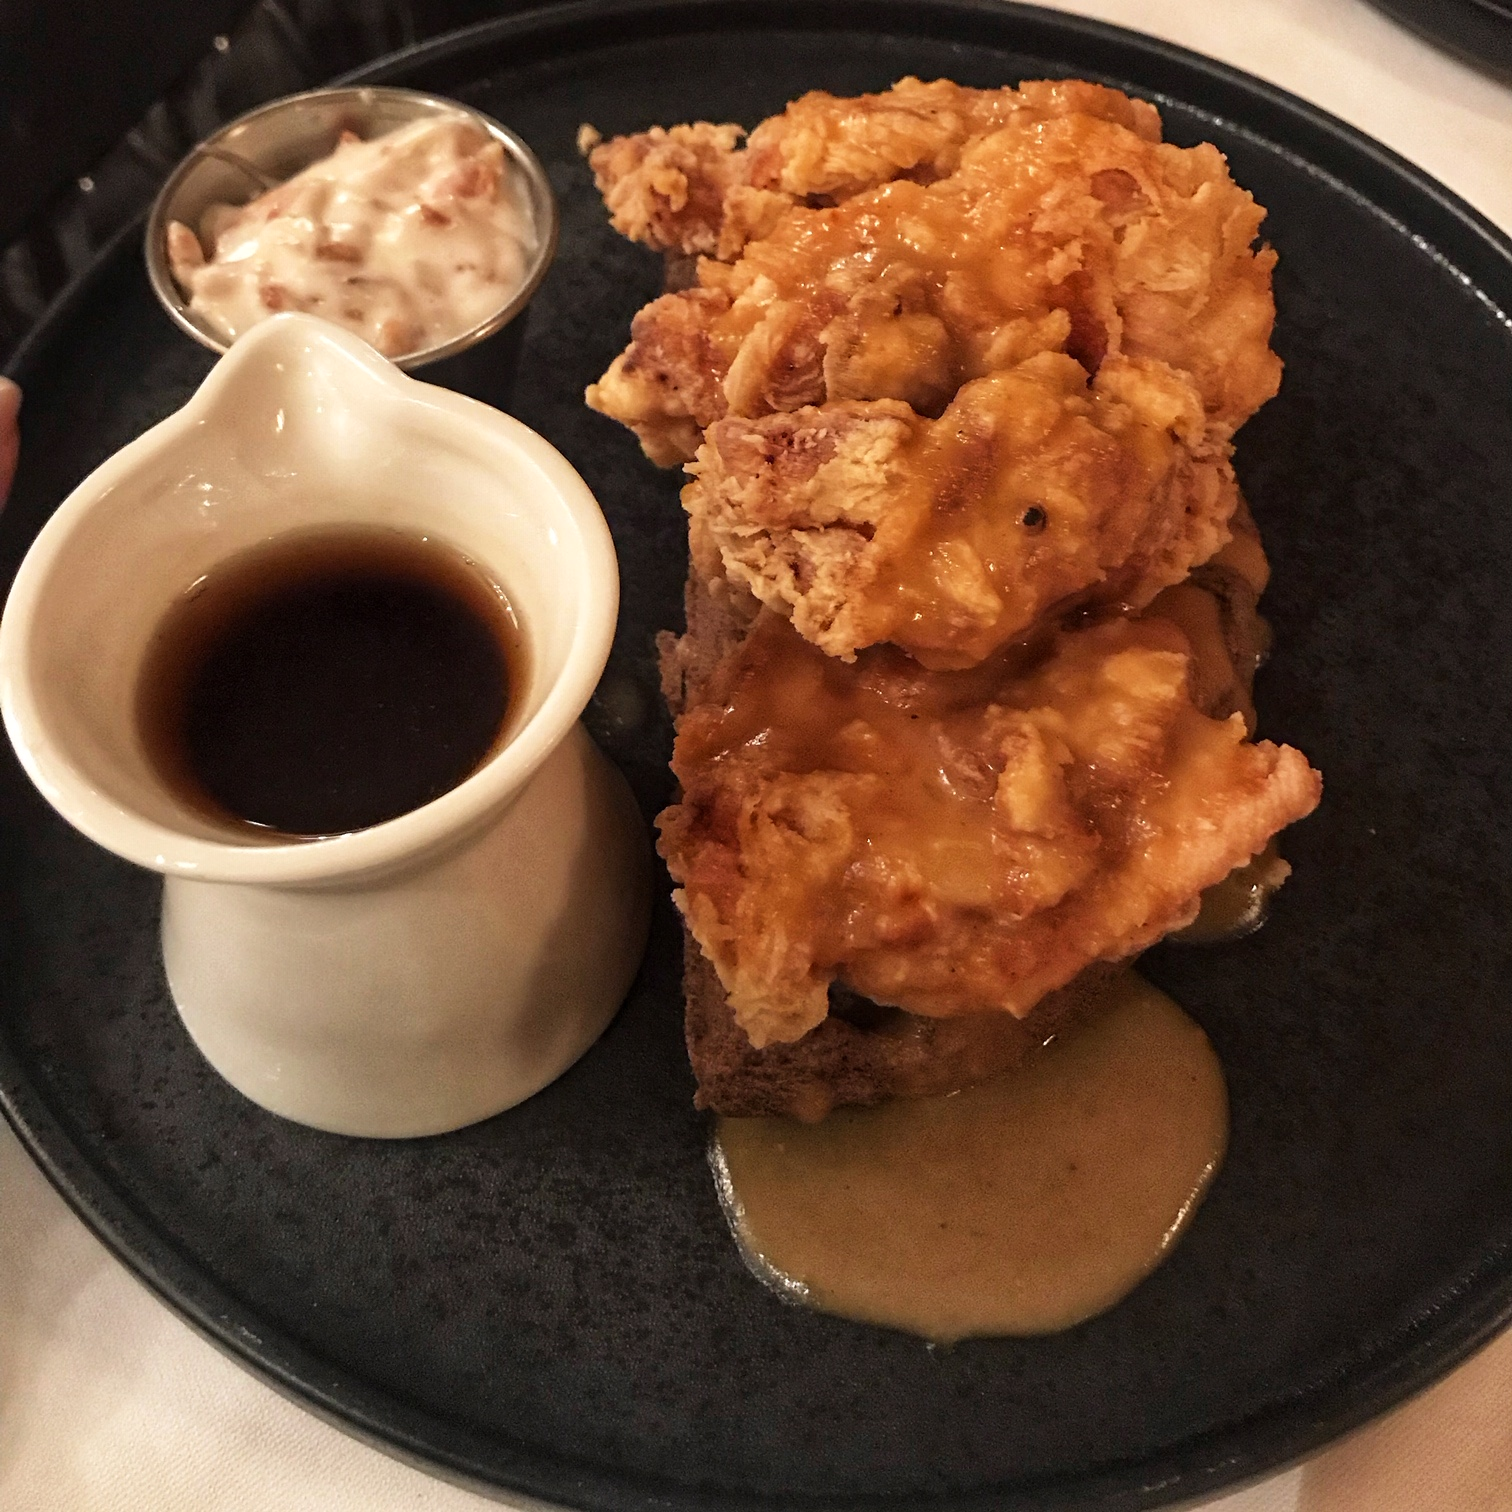 chicken & waffles, buttermilk and spiced maple syrup